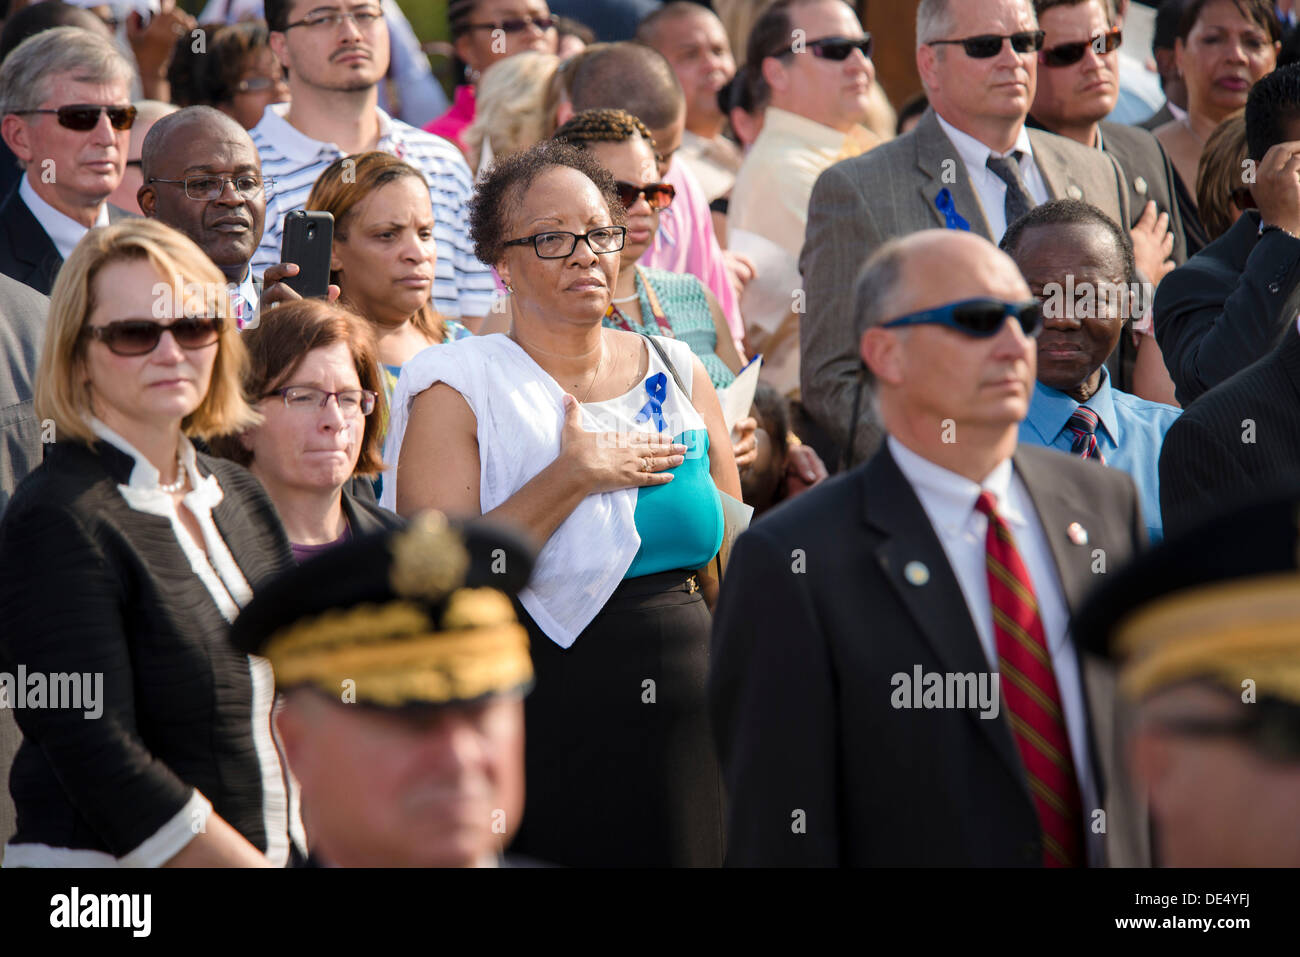 Arlington, Virginia, USA. 11th Sep, 2013. Family members of those killed during the 9/11 terrorist attack on the Pentagon stand in memory of those who lost their lives during the Pentagon Observance Ceremony September 11, 2013 in Arlington, VA. Credit:  Planetpix/Alamy Live News - Stock Image